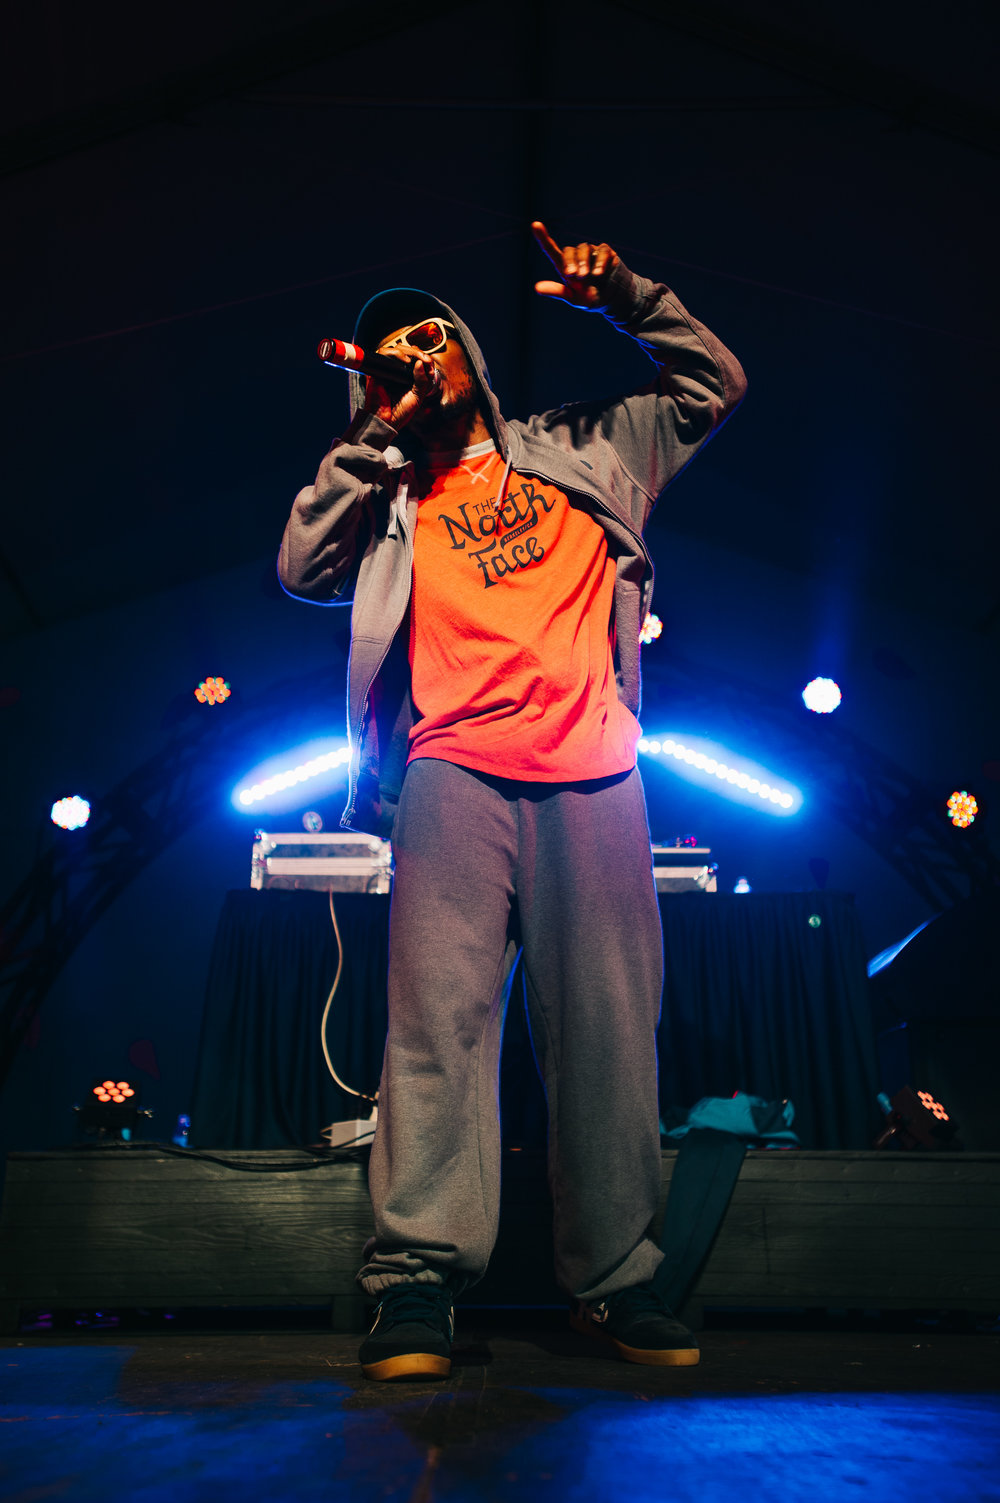 2_Del_the_Funky_Homosapien_Rifflandia-Timothy_Nguyen-20160917 (13 of 16).jpg